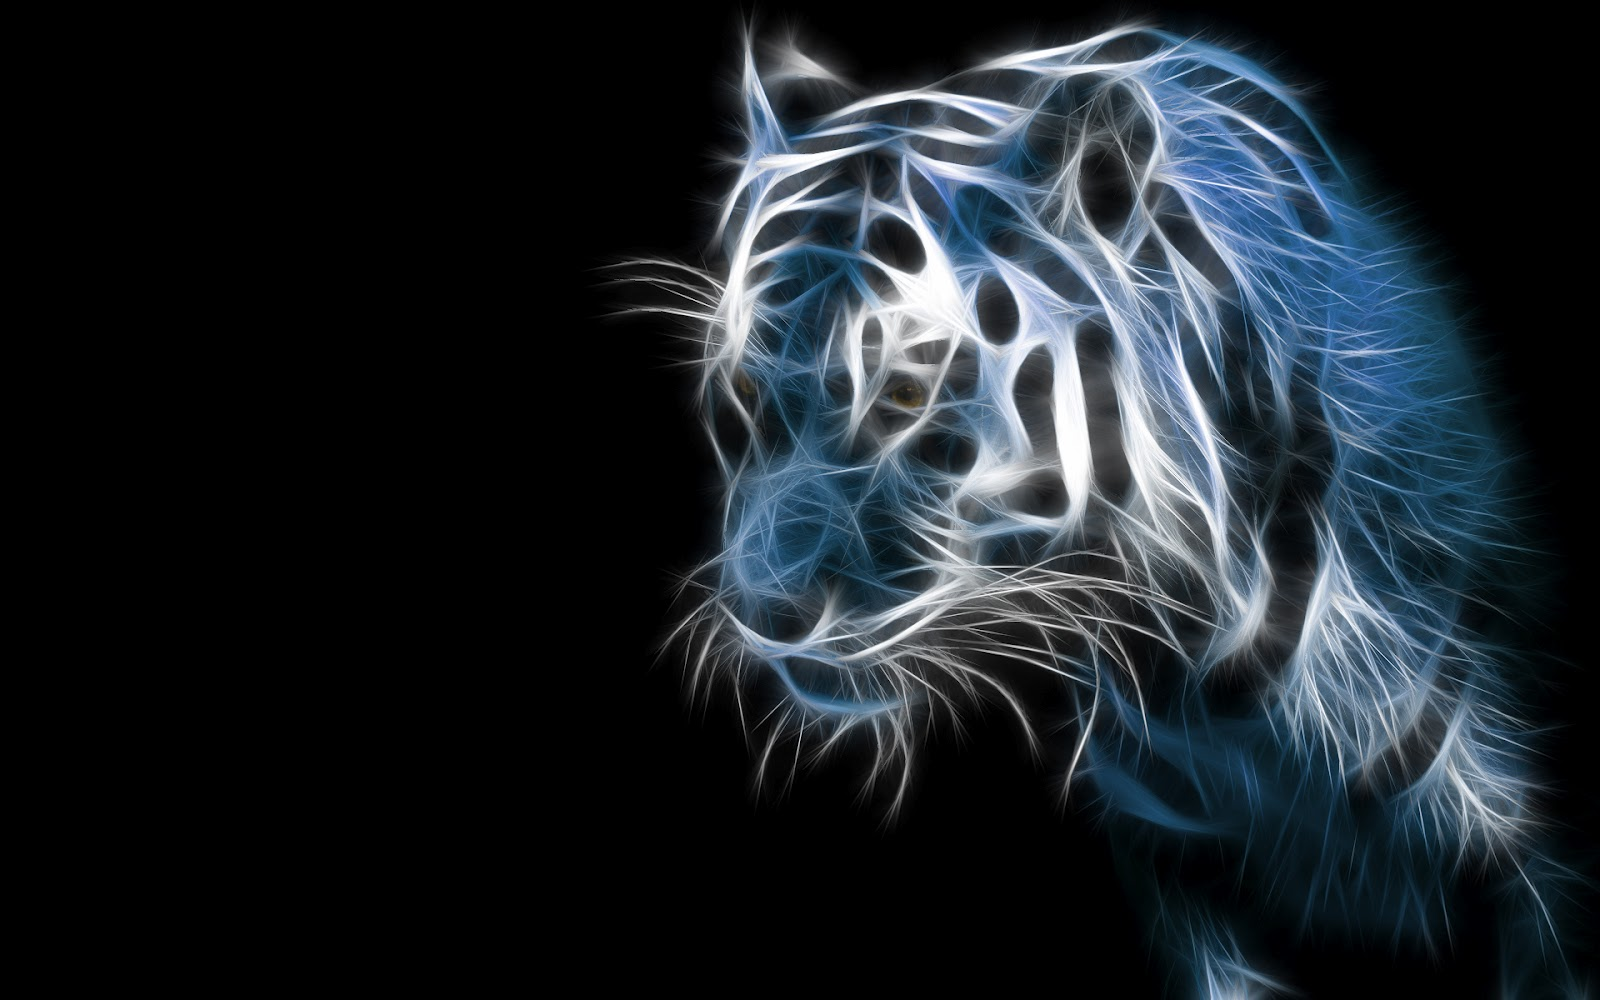 http://4.bp.blogspot.com/-JVOyyZV2J5o/UERRbY5qn2I/AAAAAAAAB68/zulifHnGf38/s1600/Animal-3D-Wallpapers-HD.jpg